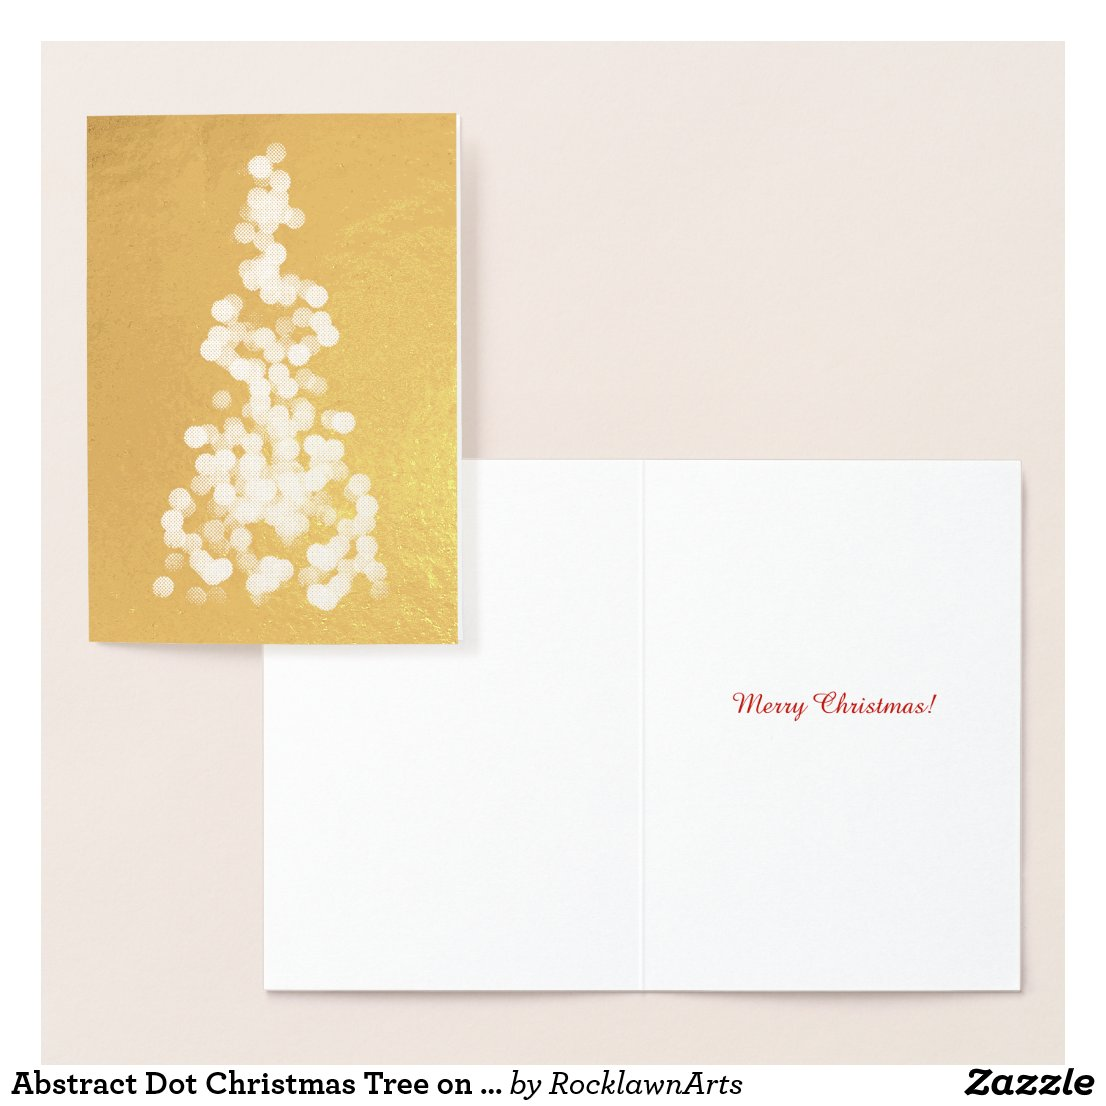 Abstract Dot Christmas Tree on Gold Foil Card